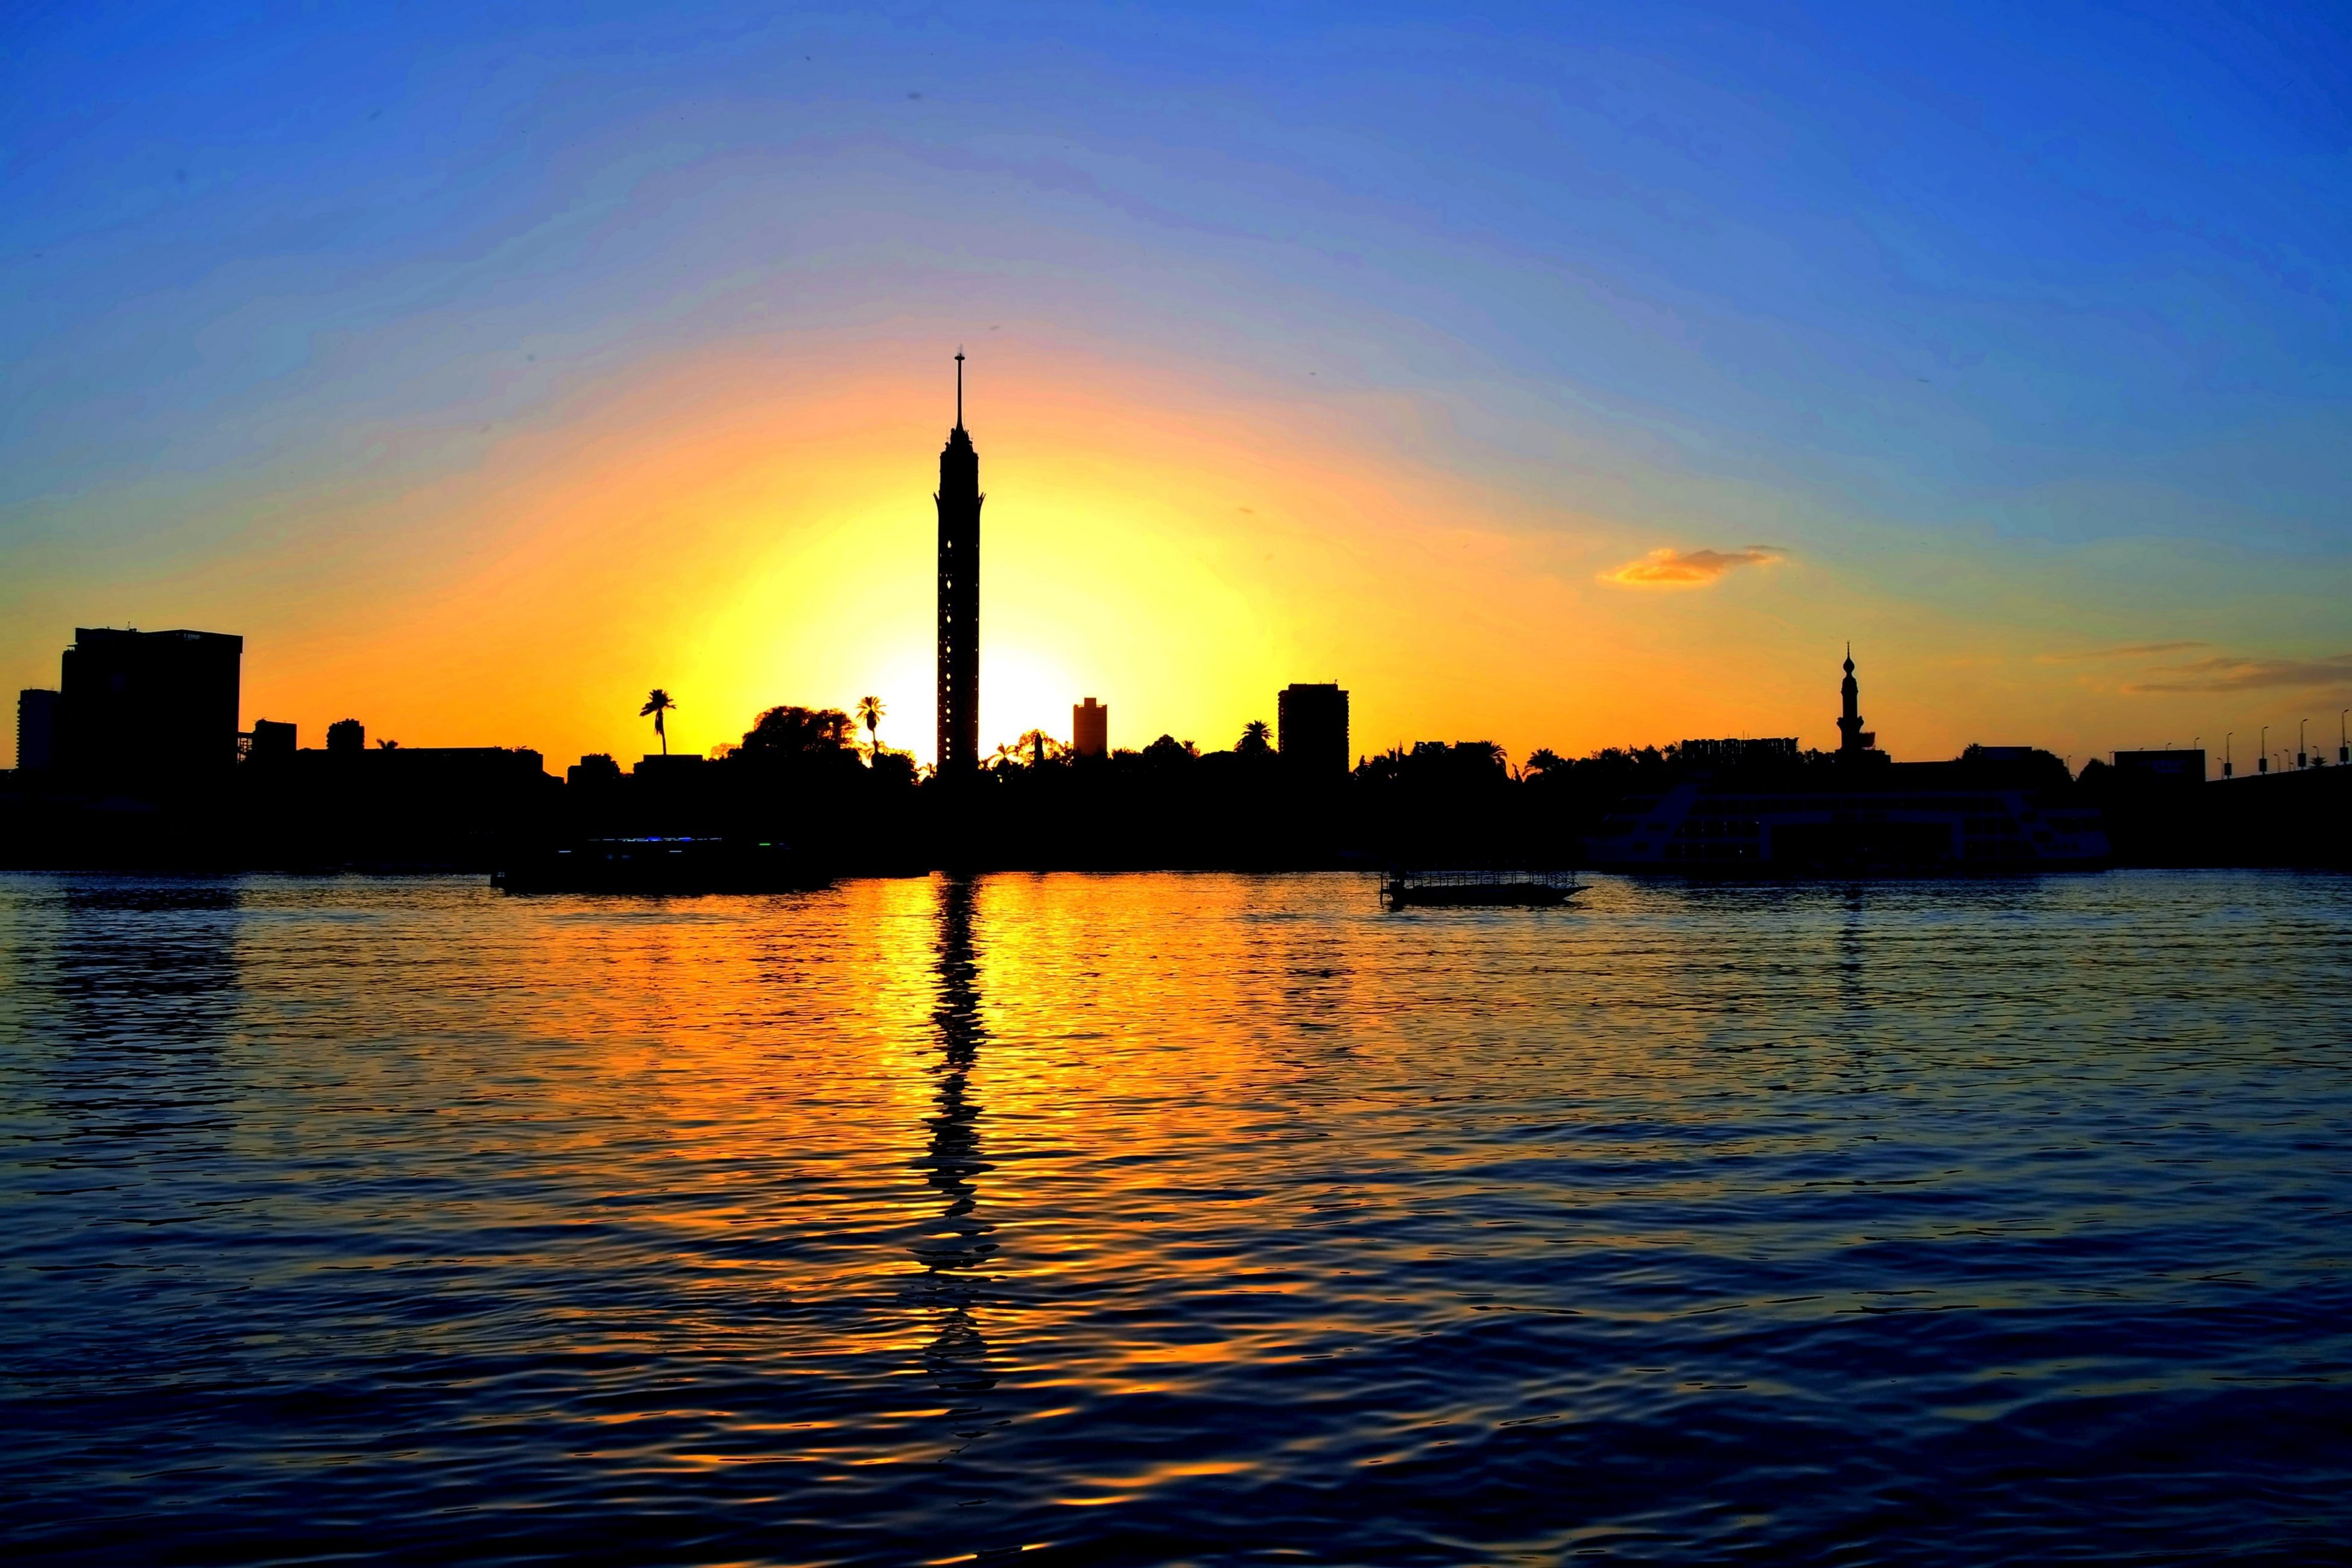 sunset, city, reflection, silhouette, architecture, building exterior, water, sky, travel destinations, urban skyline, waterfront, built structure, no people, skyscraper, outdoors, cityscape, romantic sky, nature, beauty in nature, day